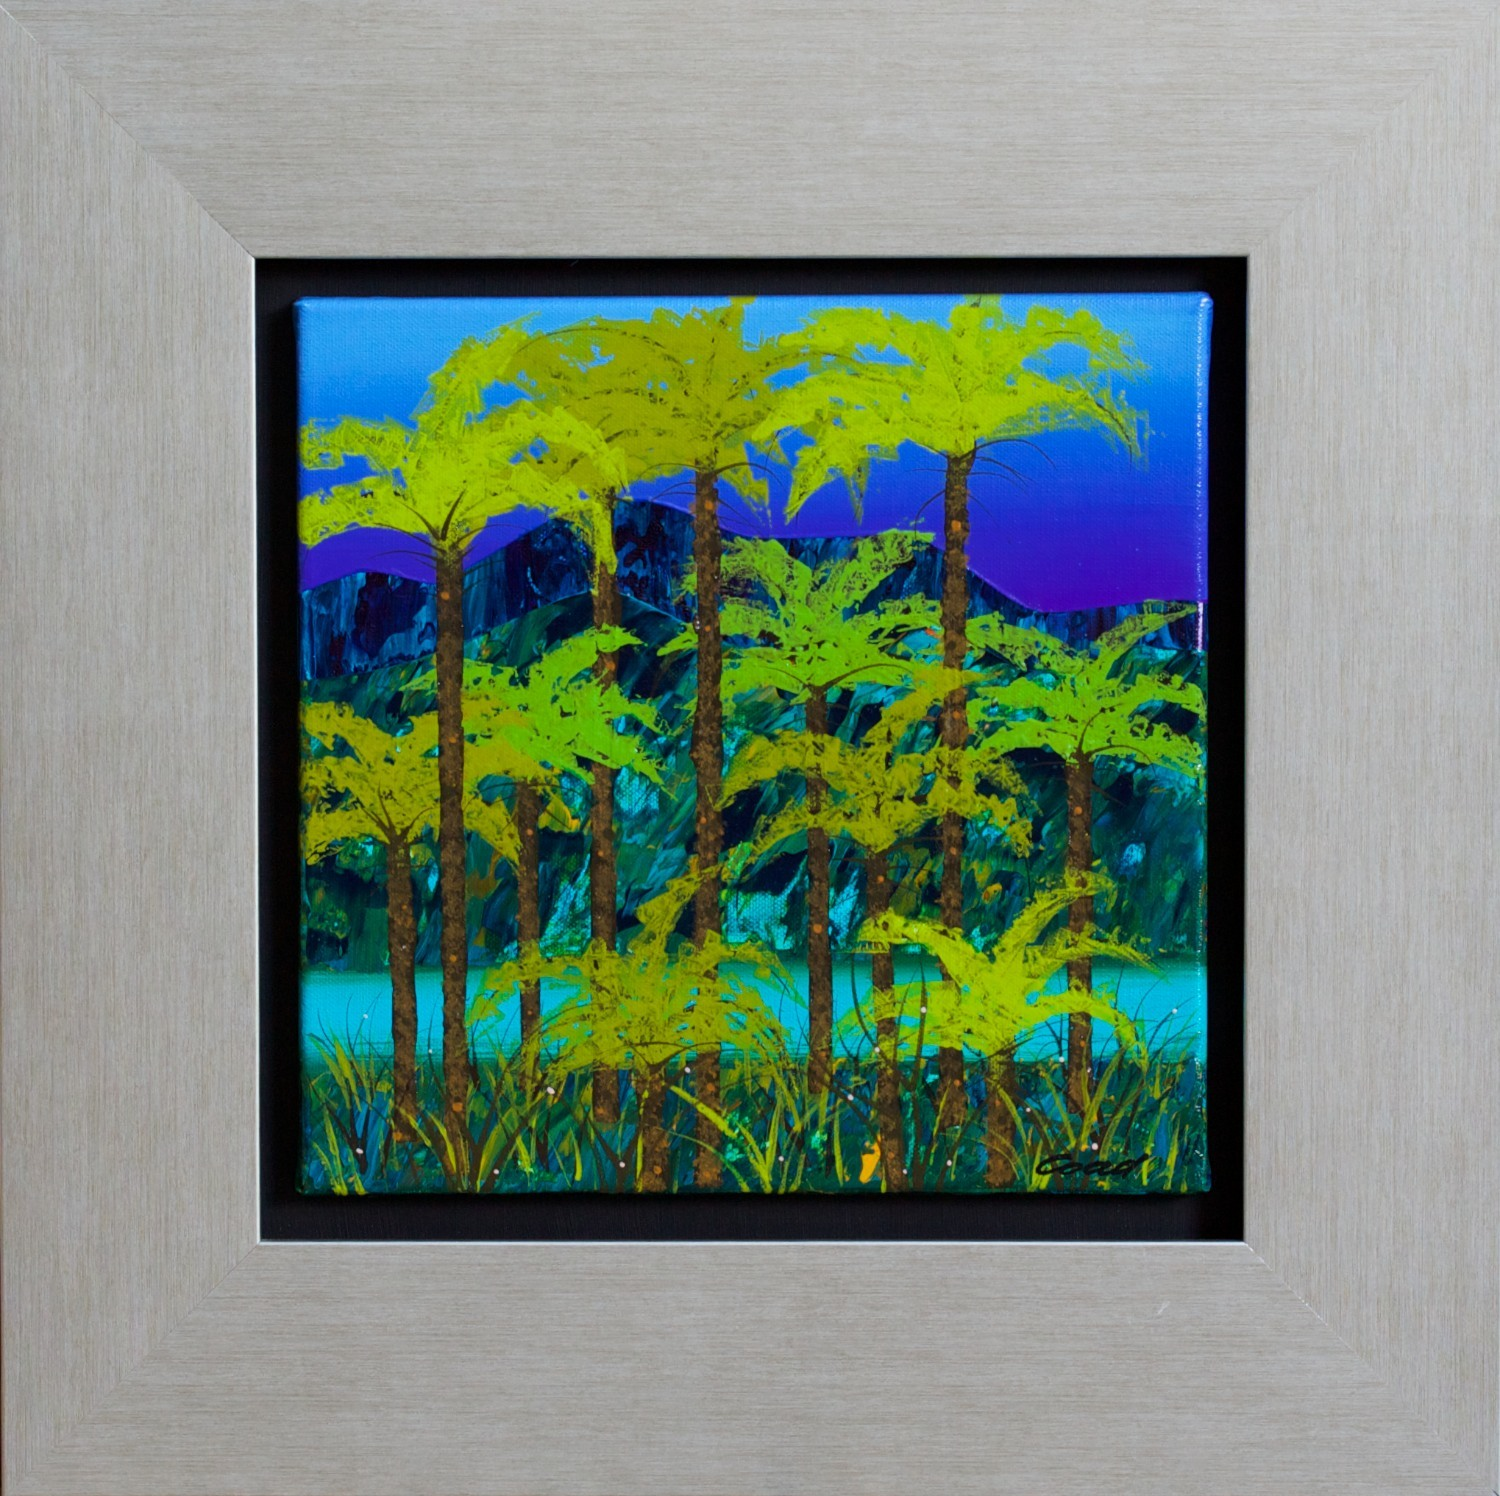 #14545 Peter Coad 'Tree Fern & Creek Bed Study Blue Mountains' Mixed Media 52 x 52 Was $2,900 Now $2240